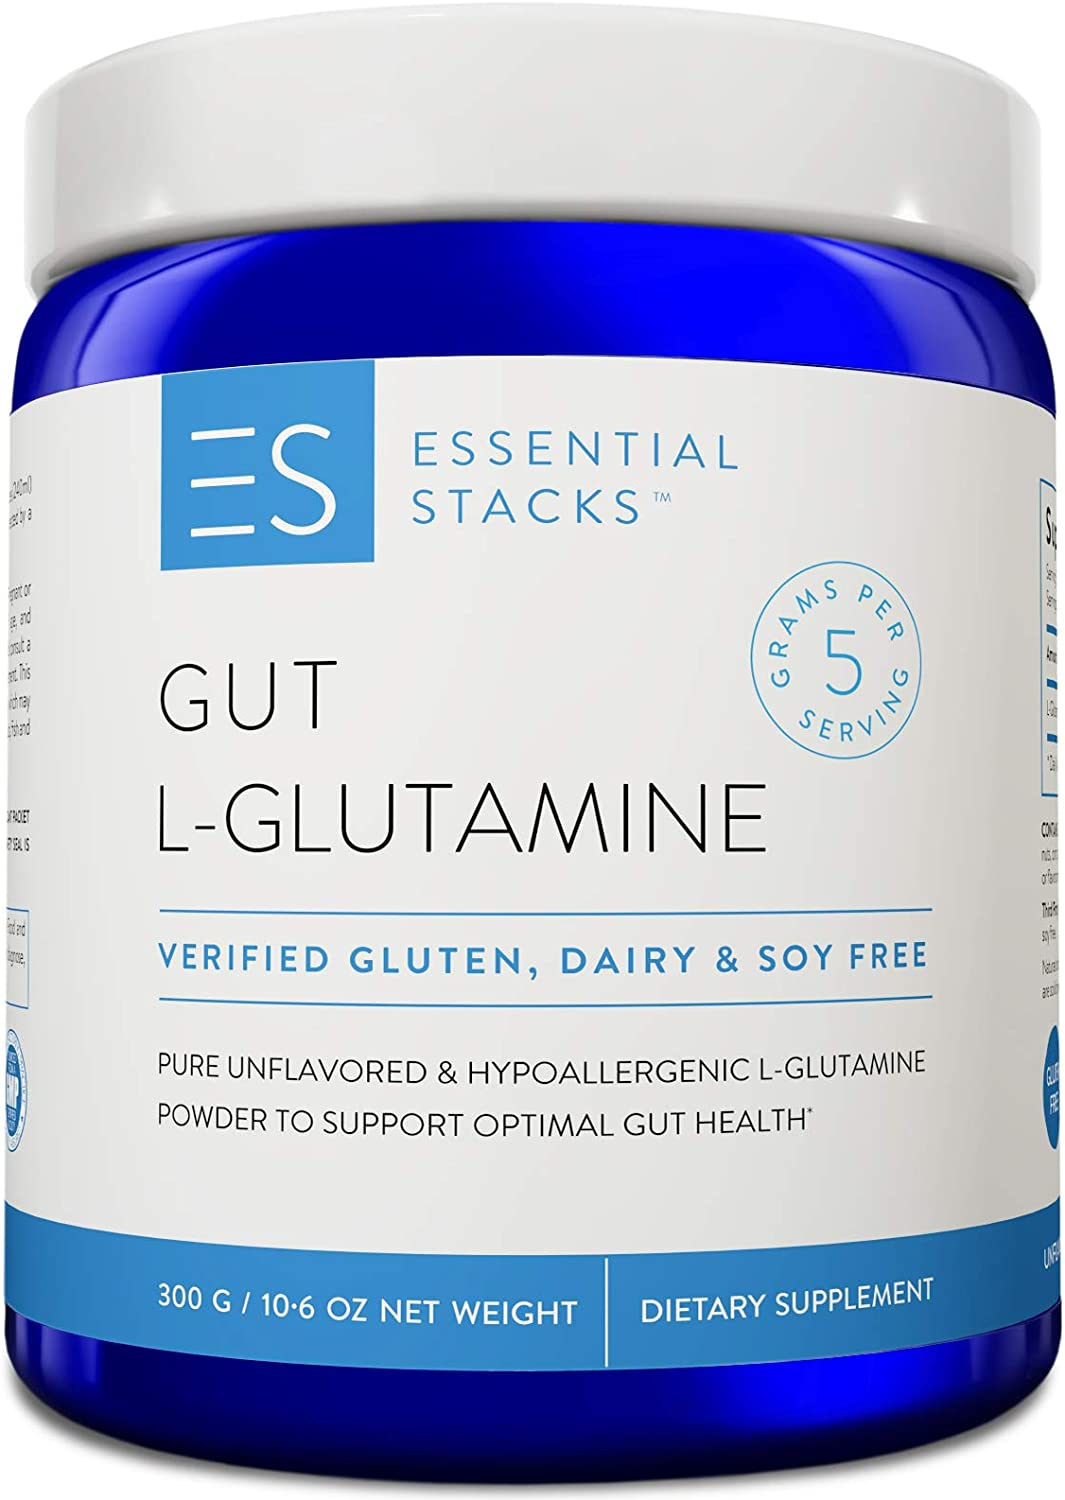 Essential Stacks Gut L-Glutamine Powder – Gluten Free, Dairy Free, Soy Free, Non-GMO Hypoallergenic with 3rd Party Verified Allergen Testing – Pure Unflavored L Glutamine for Optimal Gut Health